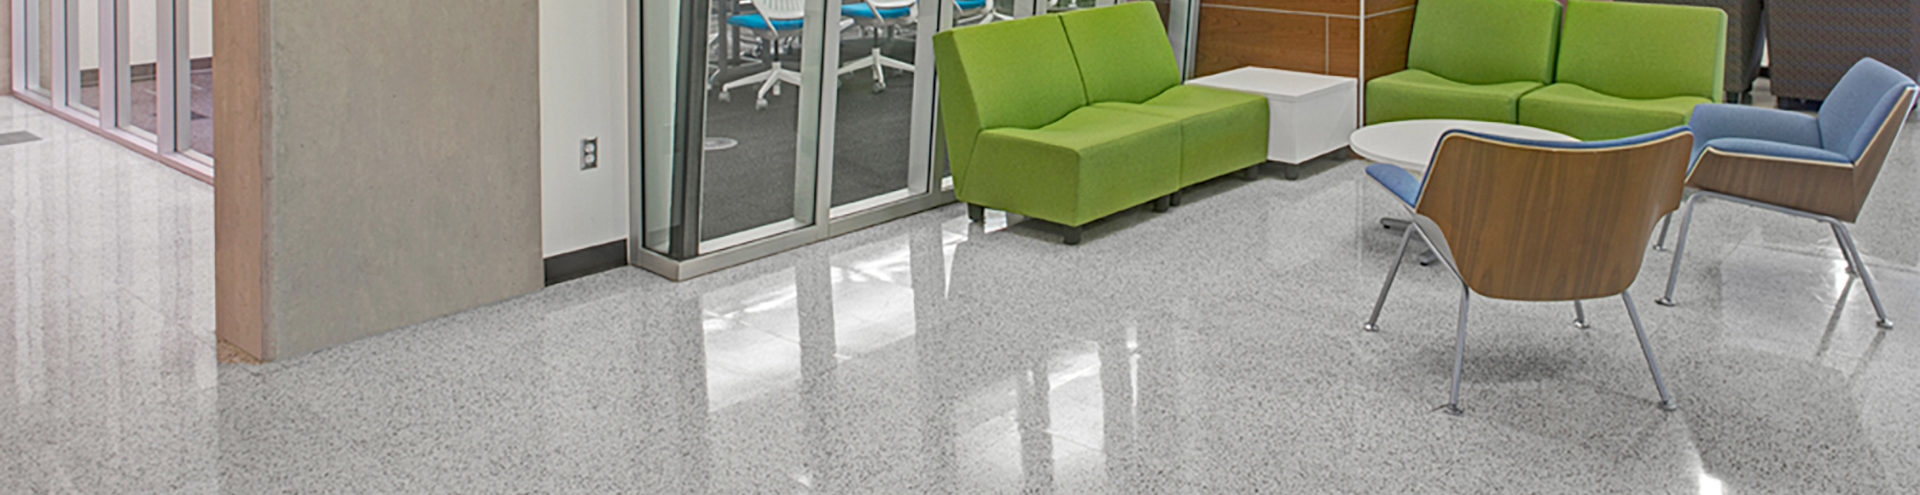 Why work with Sustainable Access Floor Solutions?